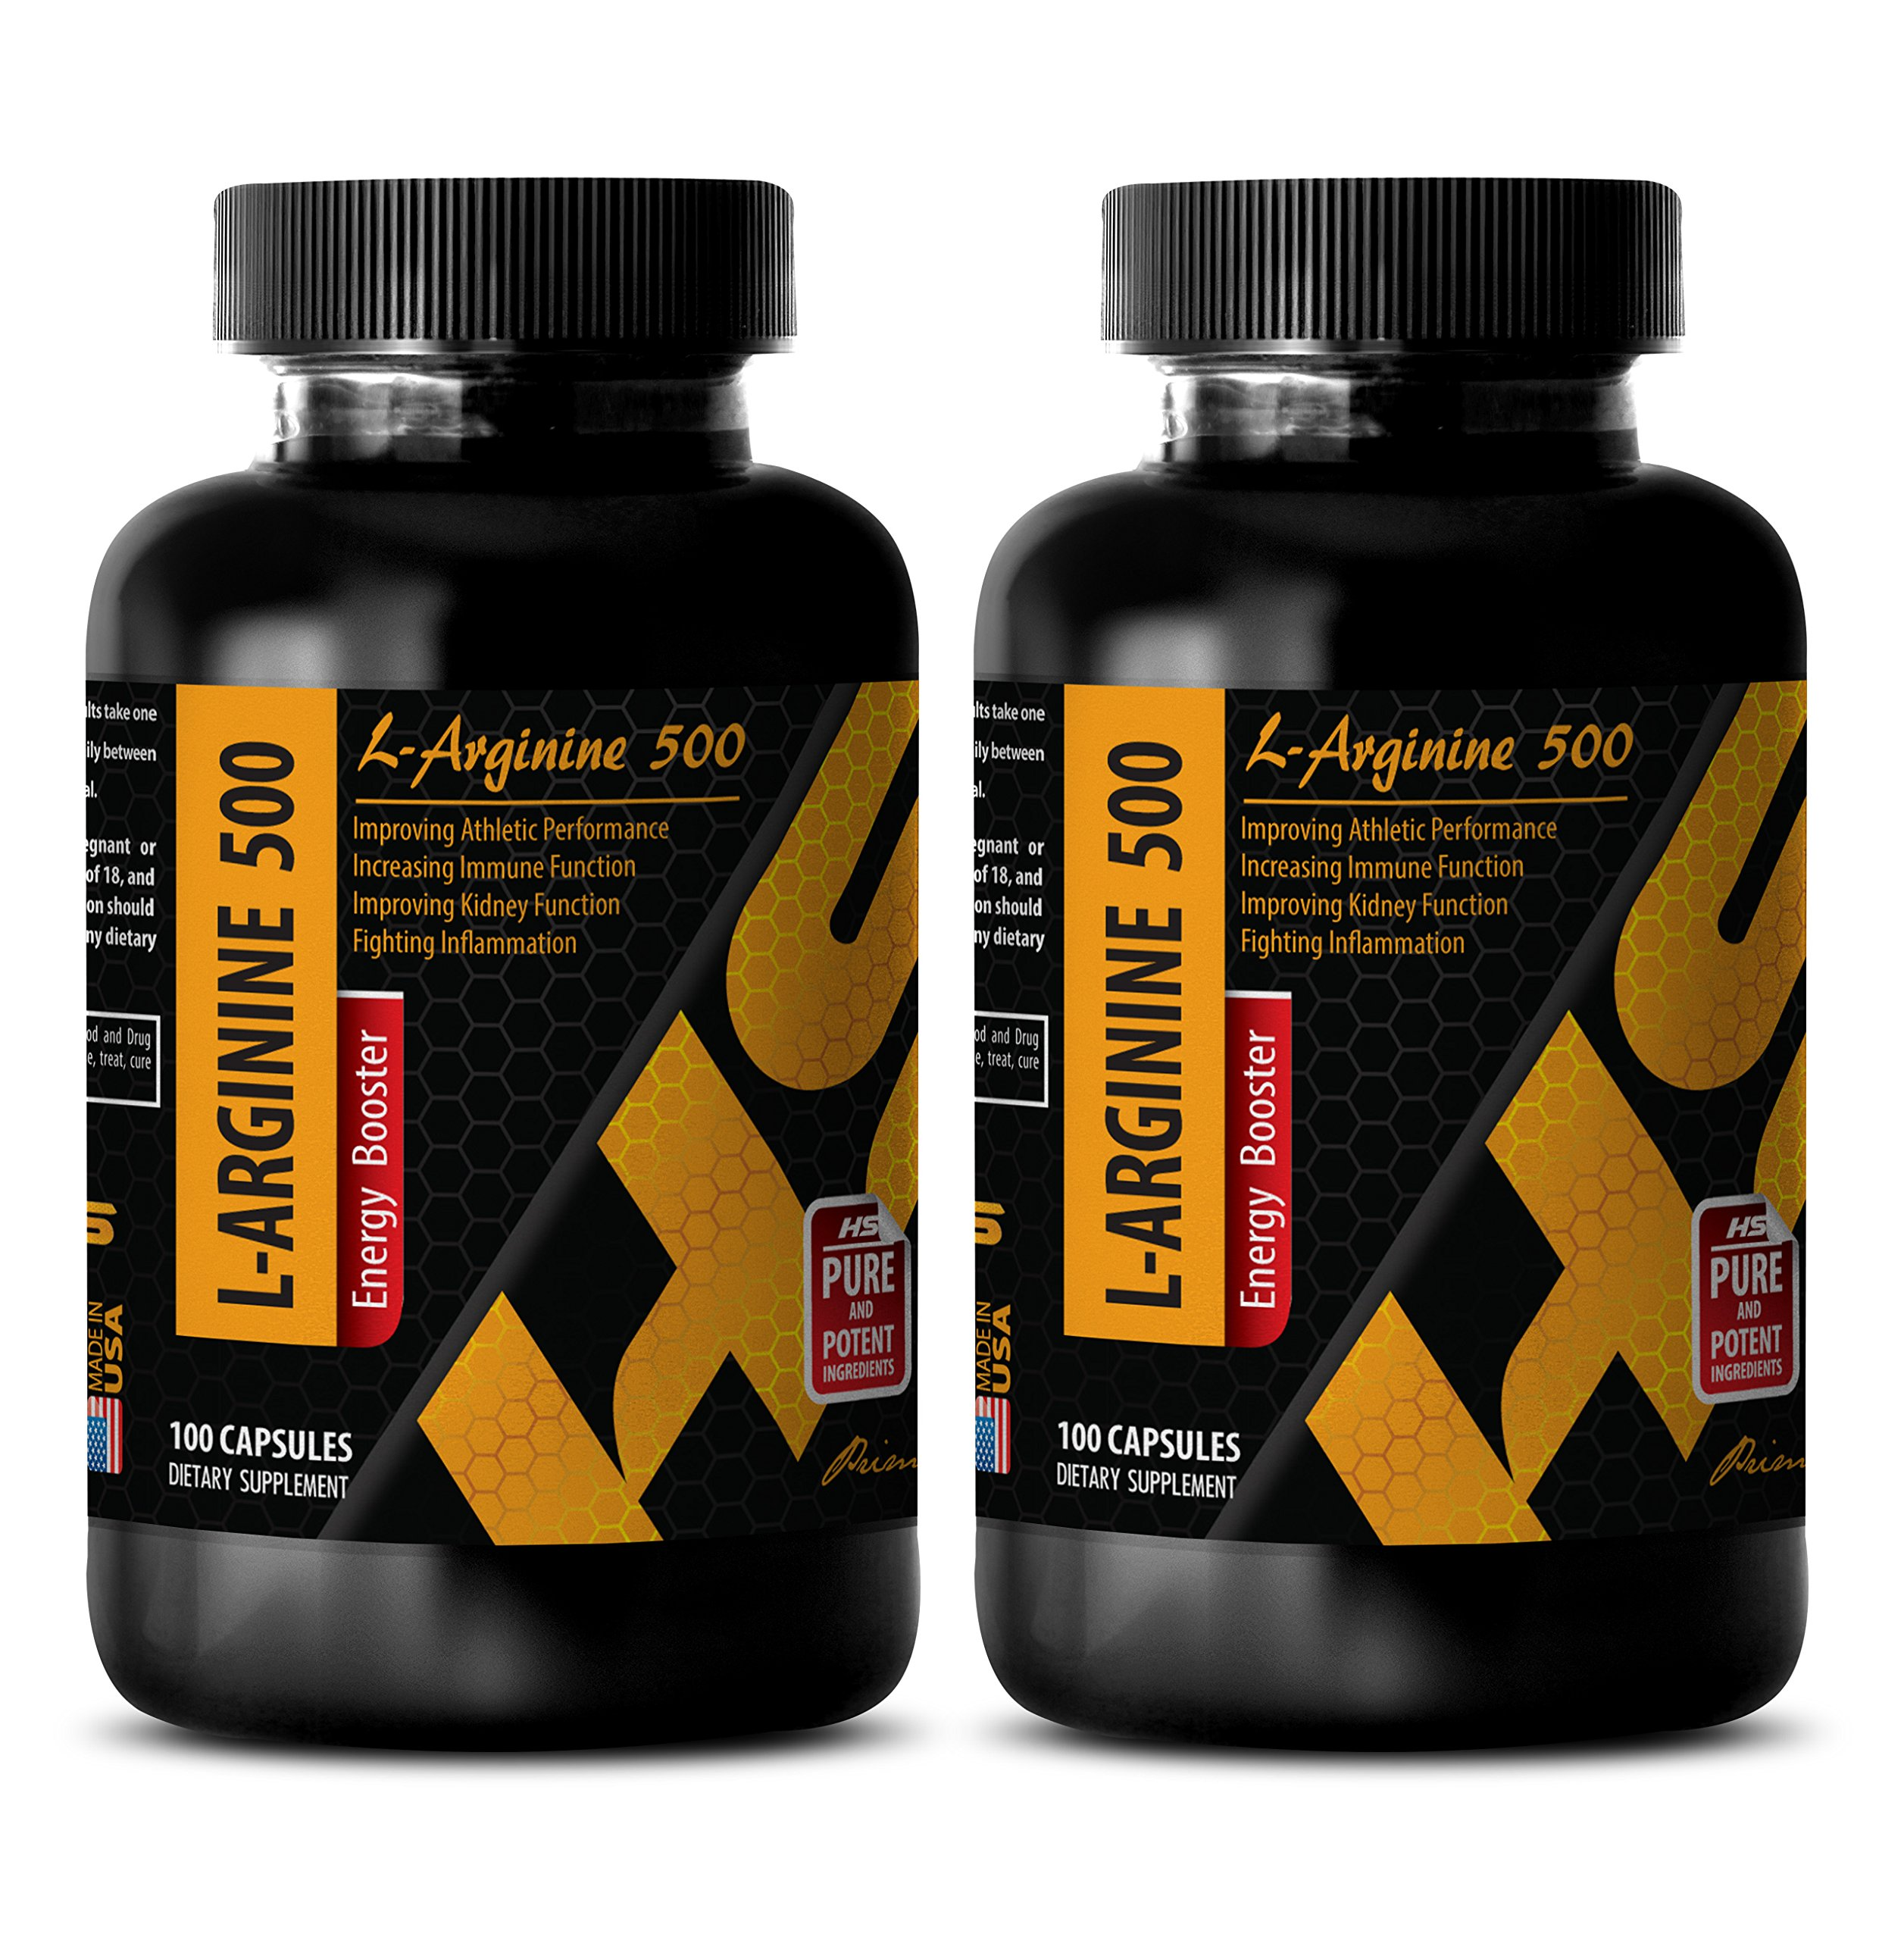 Weight loss and energy - L-ARGININE 500 - L-arginine for weight loss - 2 Bottles 200 Capsules by HS PRIME